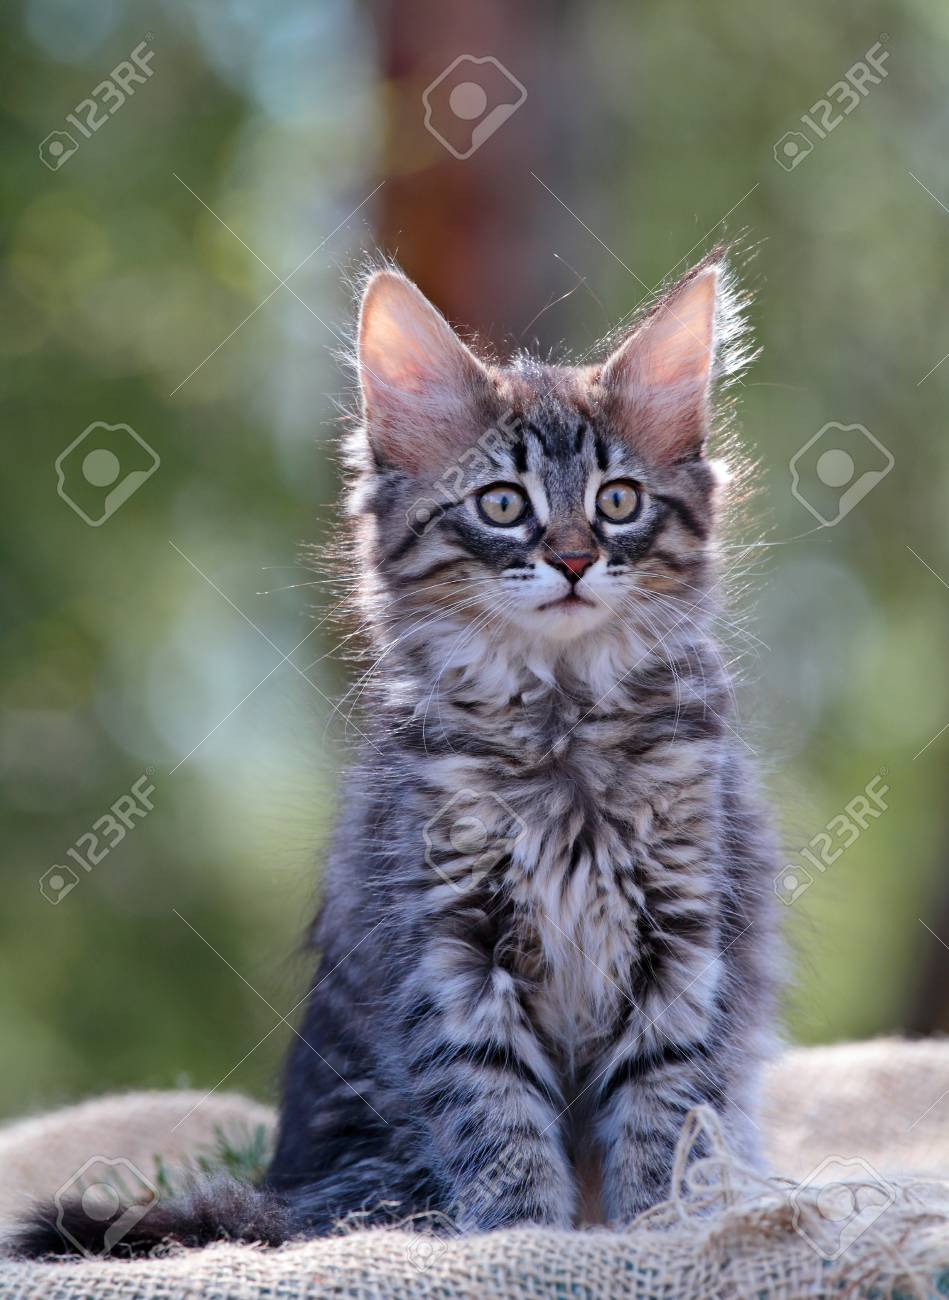 Norwegian Forest Cat Kitten Sitting Outdoors In Backlight Stock Photo Picture And Royalty Free Image Image 117282611